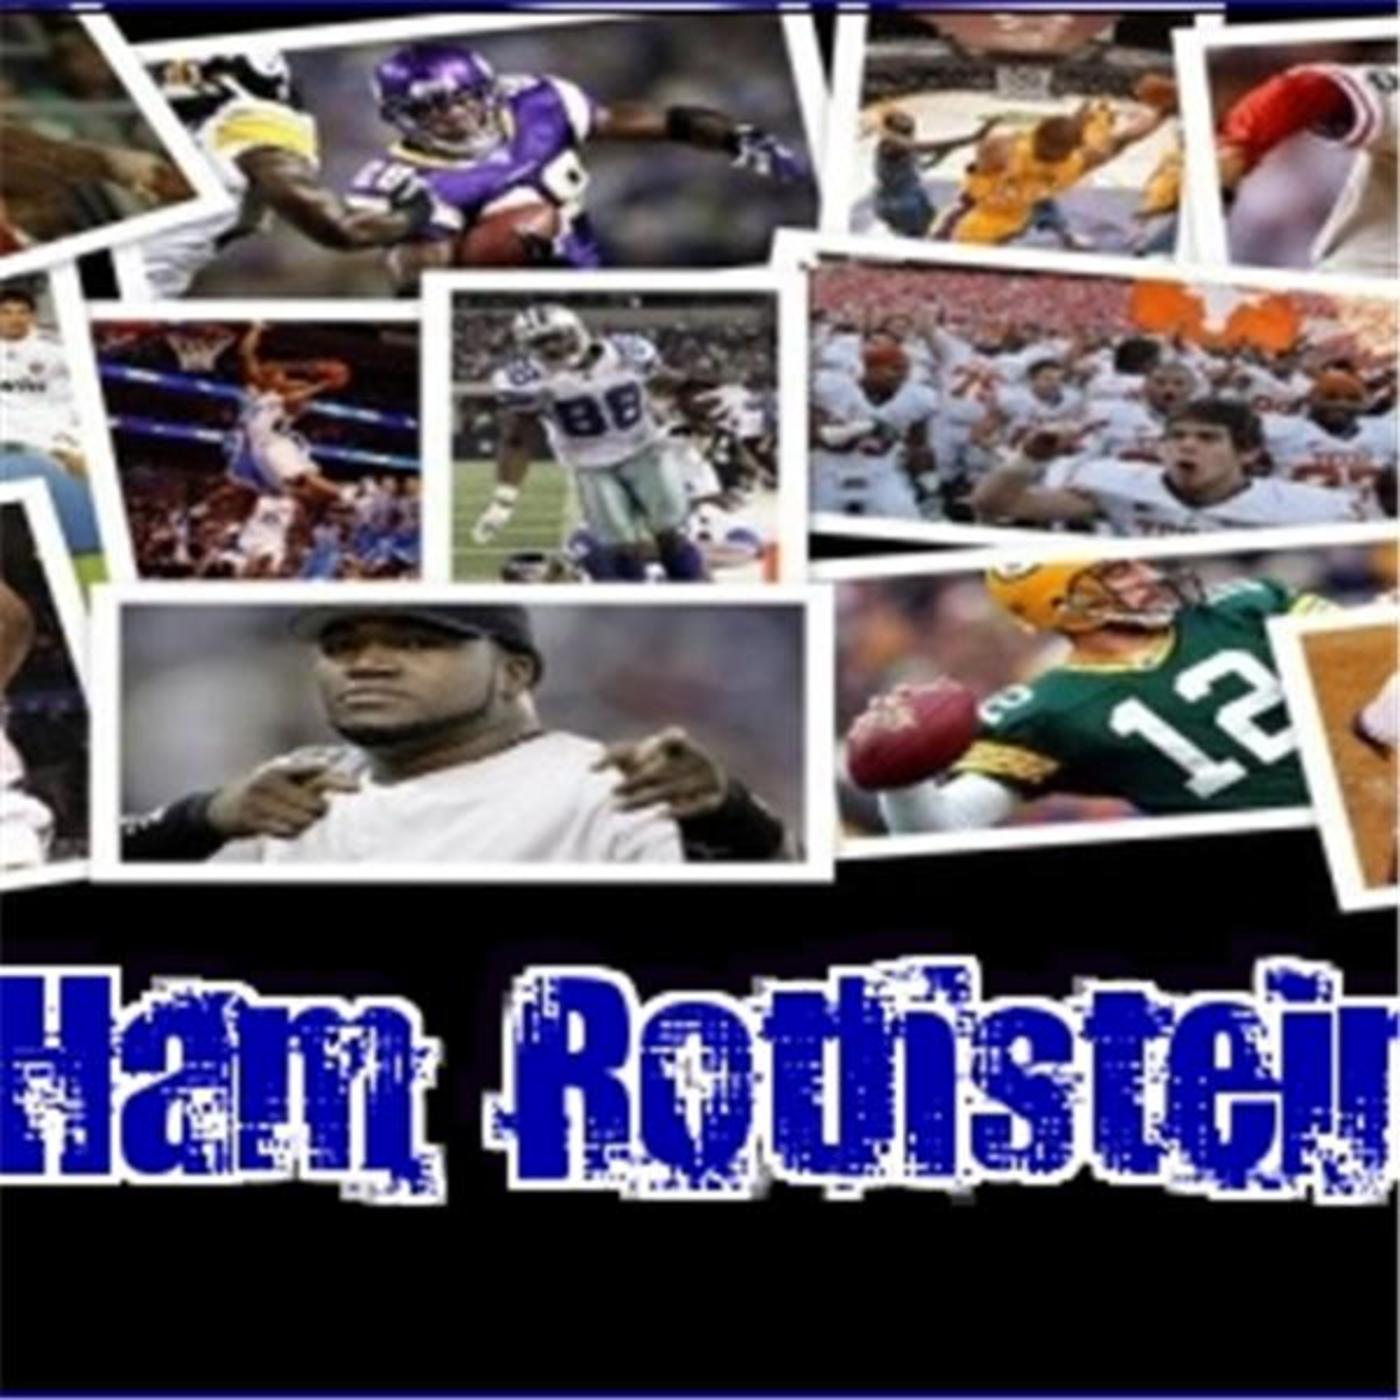 Ham Rothstein Sports Report